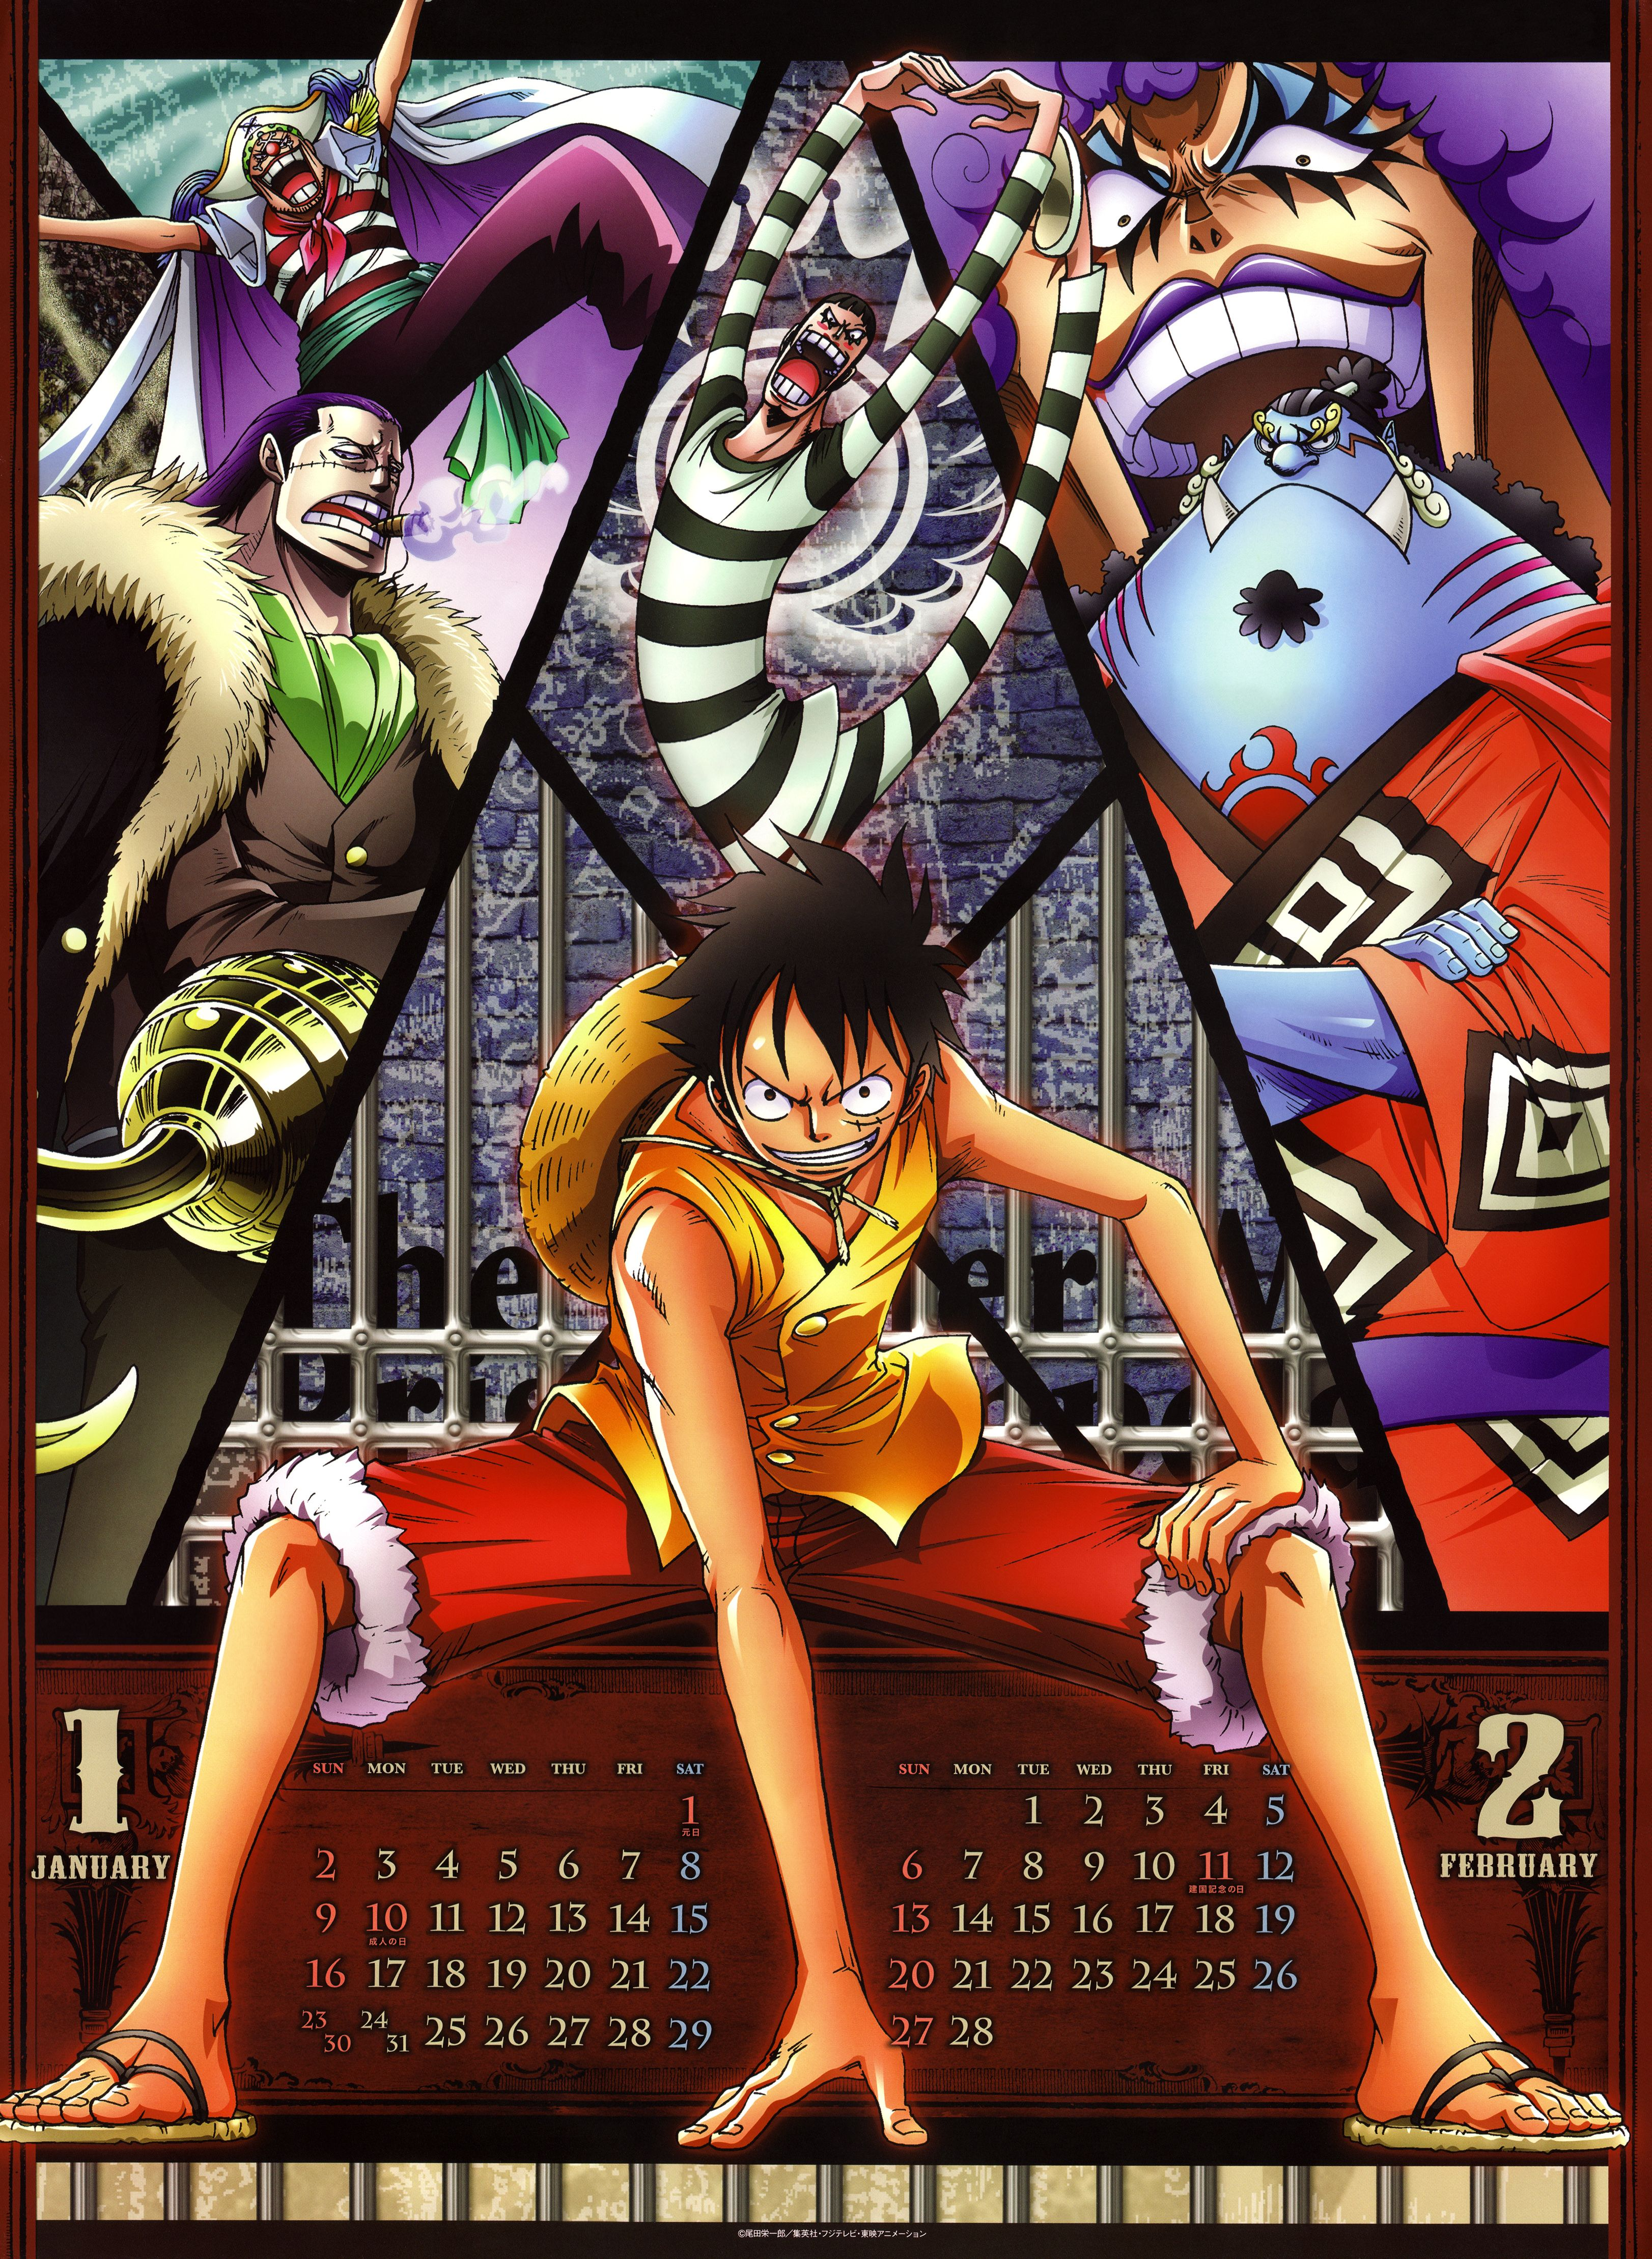 Pin By Caleb Joe On Anime One Piece Images One Piece One Piece Anime